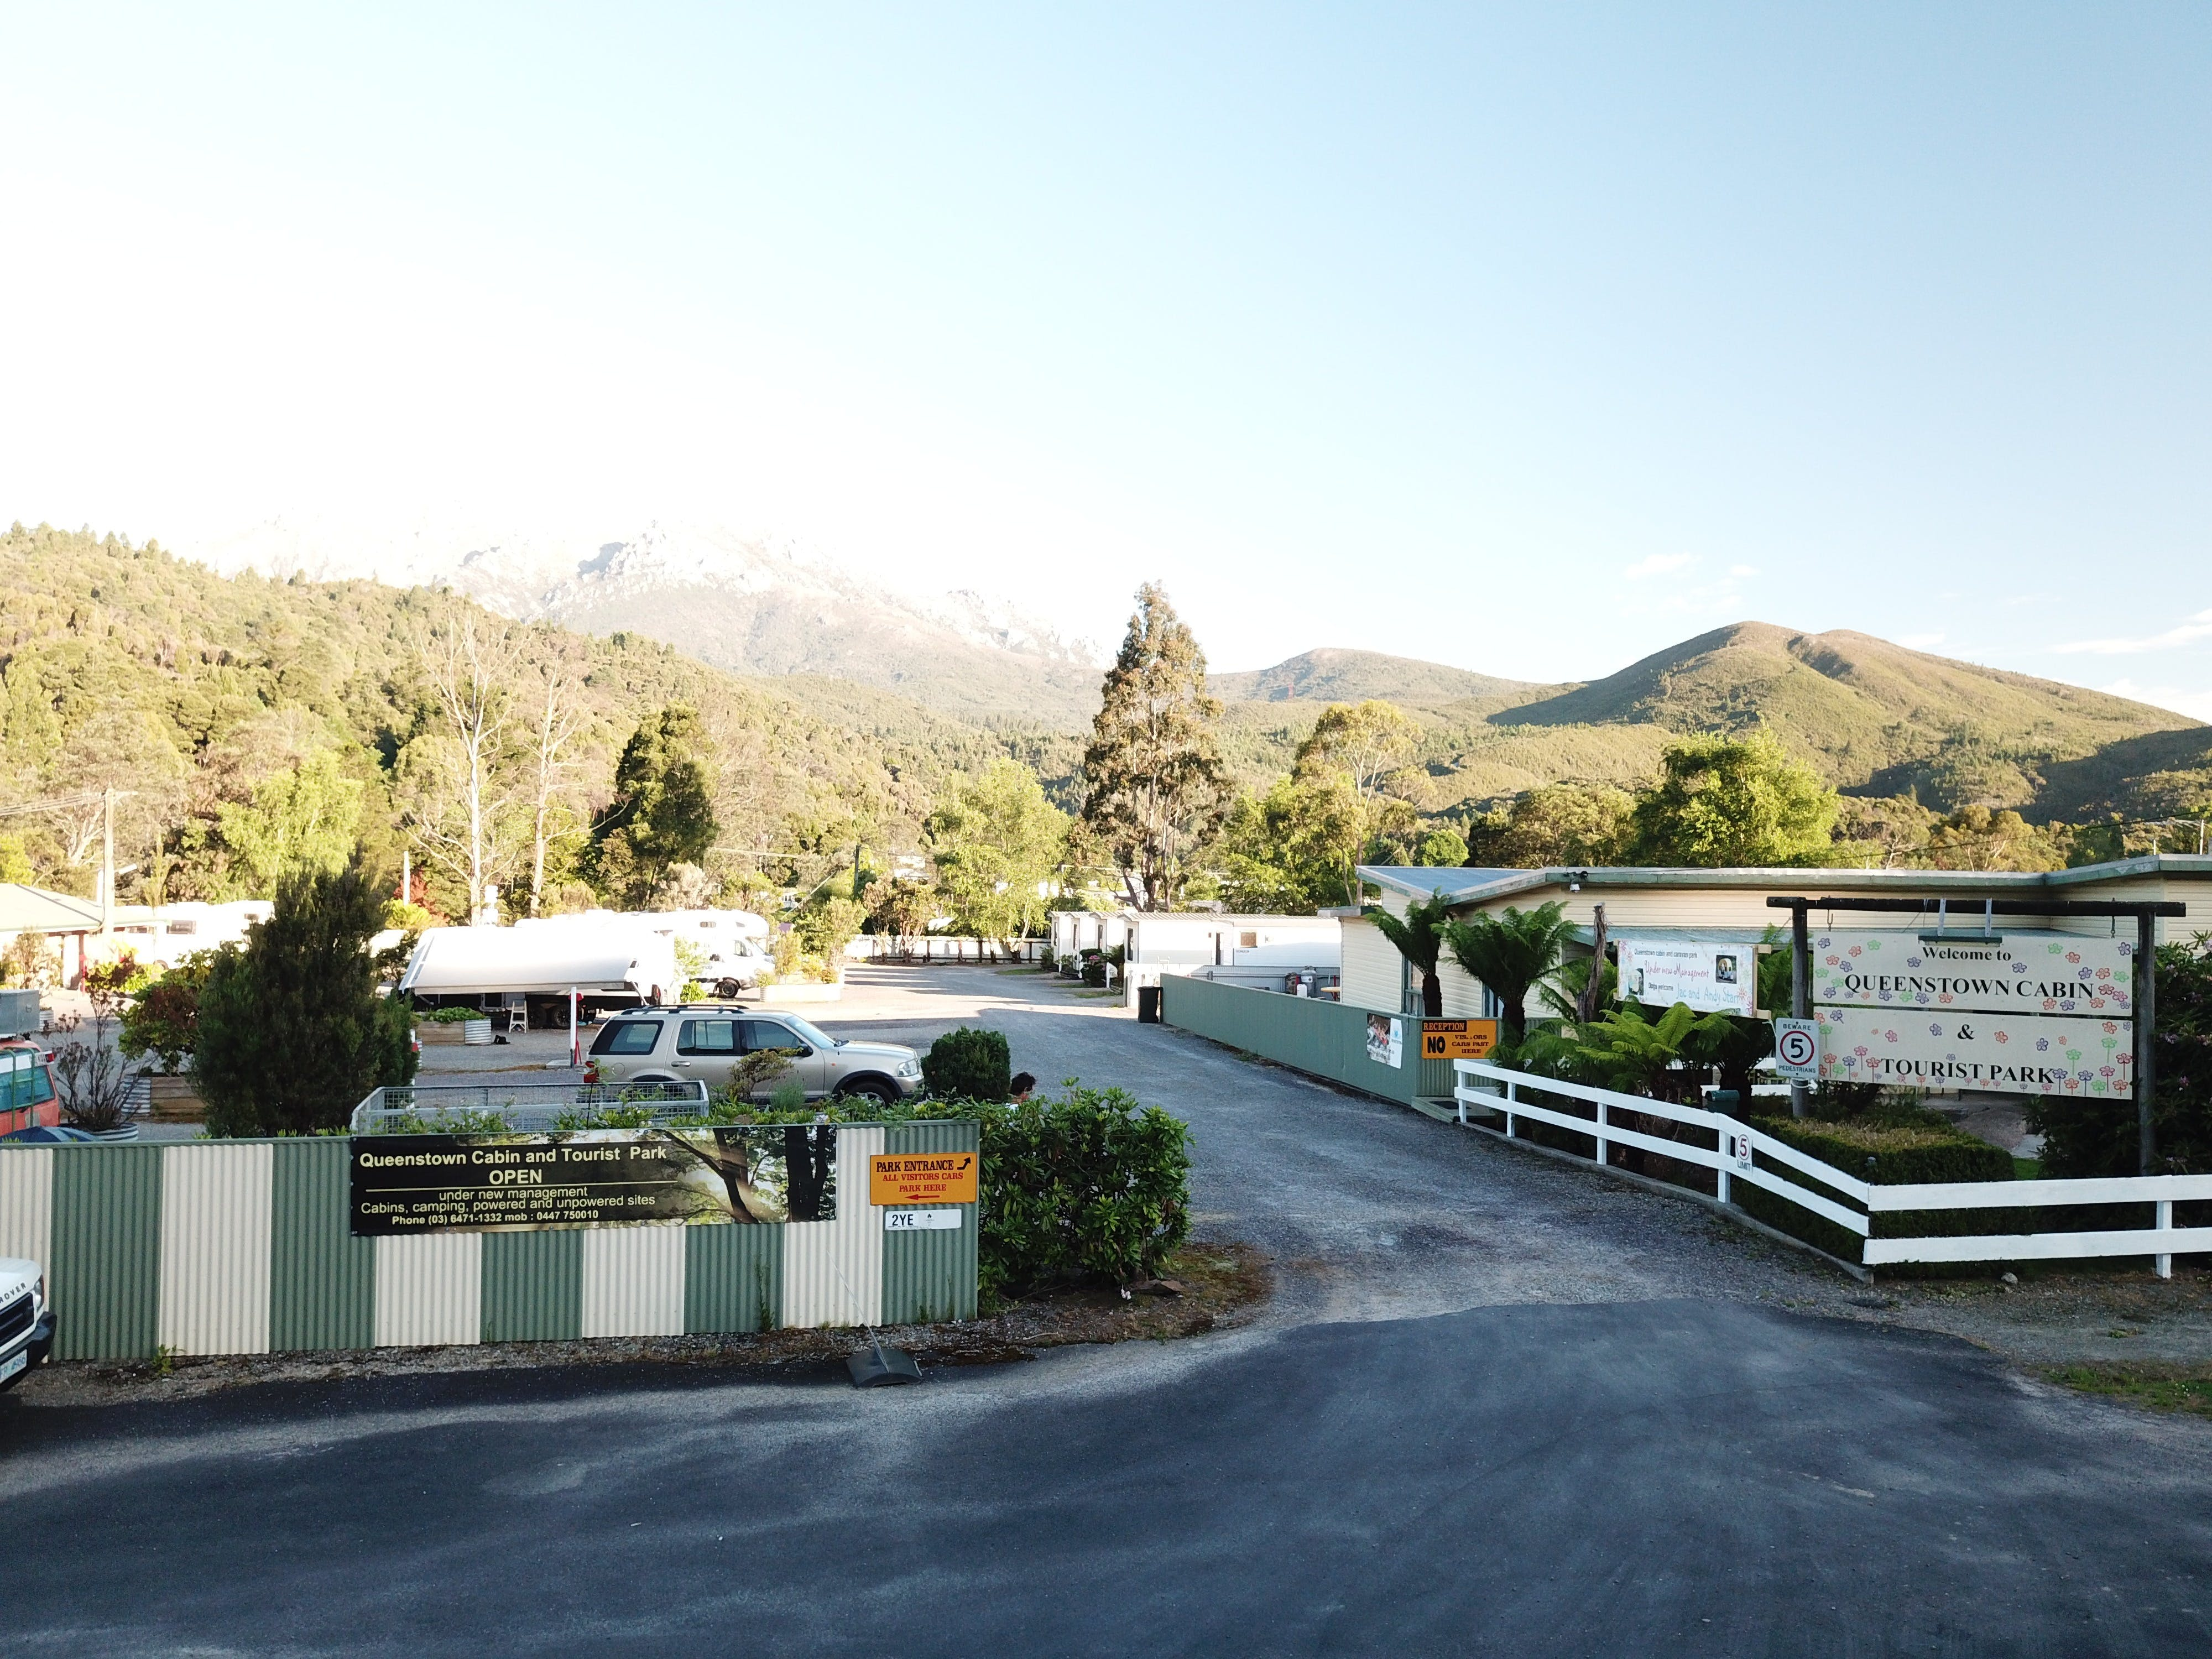 Queenstown Cabin and Tourist Park - Whitsundays Accommodation